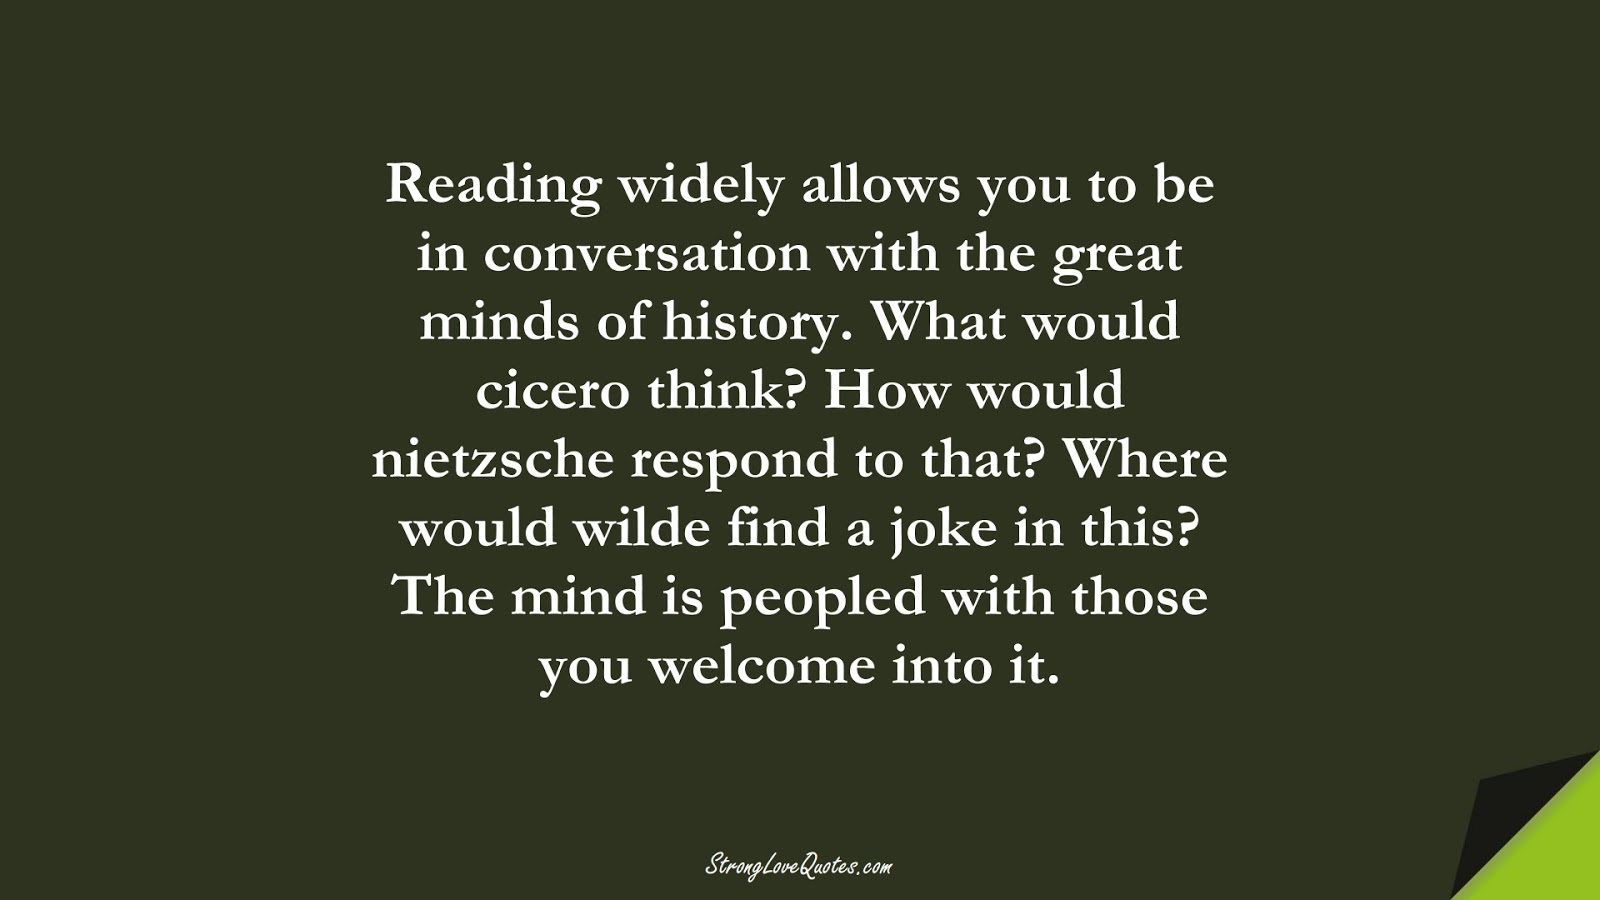 Reading widely allows you to be in conversation with the great minds of history. What would cicero think? How would nietzsche respond to that? Where would wilde find a joke in this? The mind is peopled with those you welcome into it.FALSE